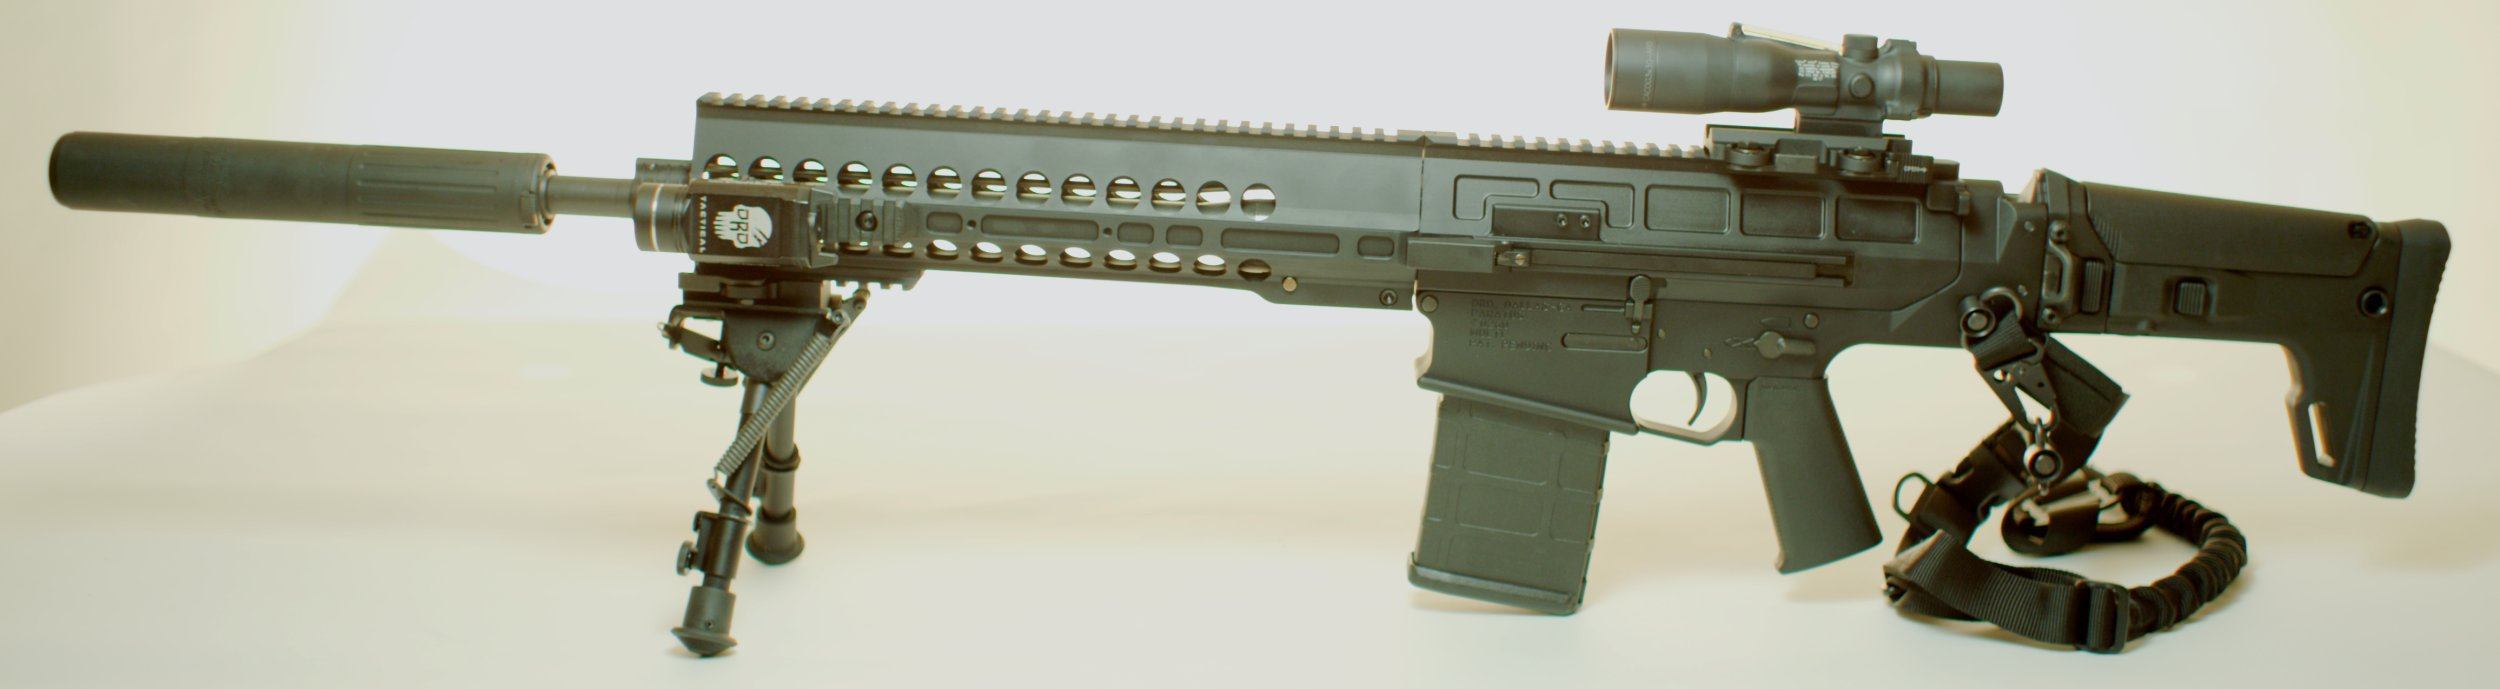 DRD Tactical Paratus P762 Gen 2 Rifle 7.62mm .308 Win. Tactical Takedown Rifle Carbine and U76 QD Upper 5 DRD Tactical Paratus P762 Gen 2 7.62mm NATO/.308 Win. Tactical Takedown AR Rifle/Carbine/SBR and U762 QD Upper Receiver for Medium to Long Range Sniping on the Go (Photos!)